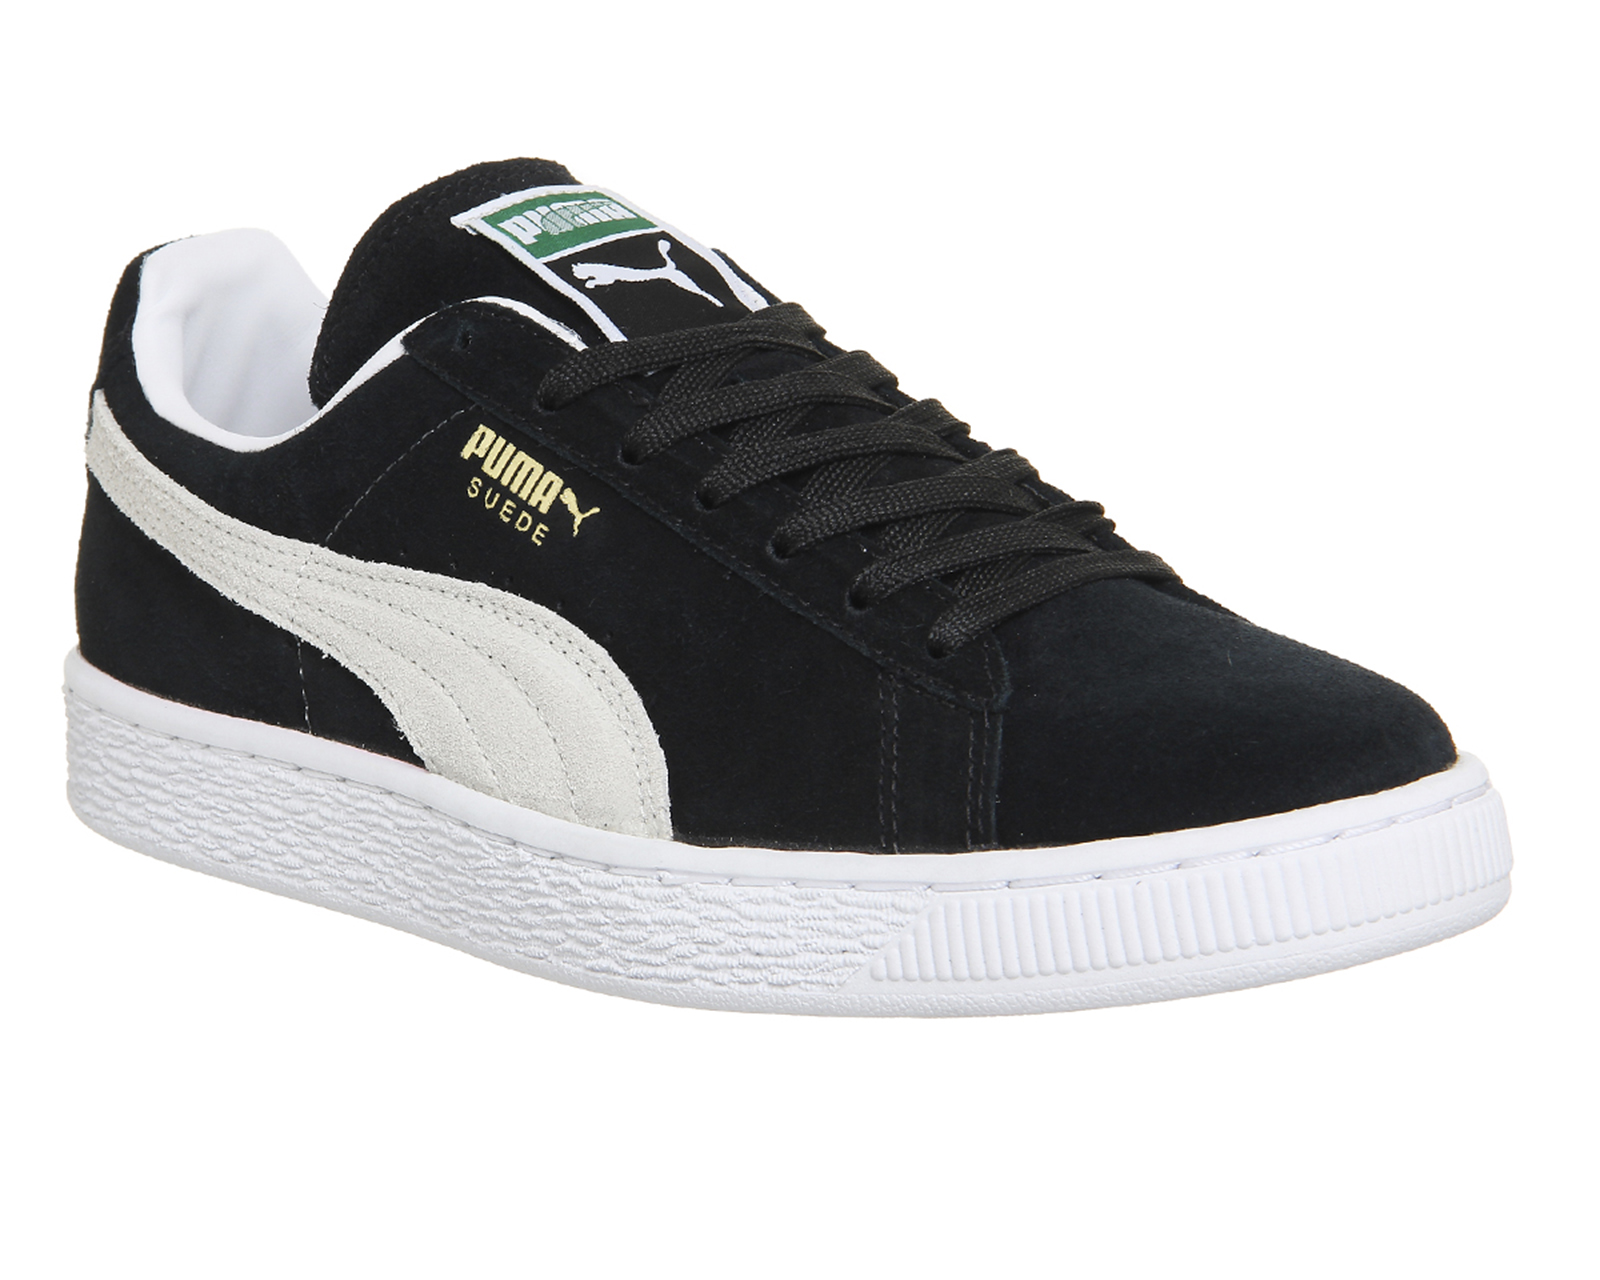 Sentinel Thumbnail 1. Sentinel Mens Puma Suede Classic BLACK WHITE Trainers  Shoes. Sentinel Thumbnail 2 0309c3fe7